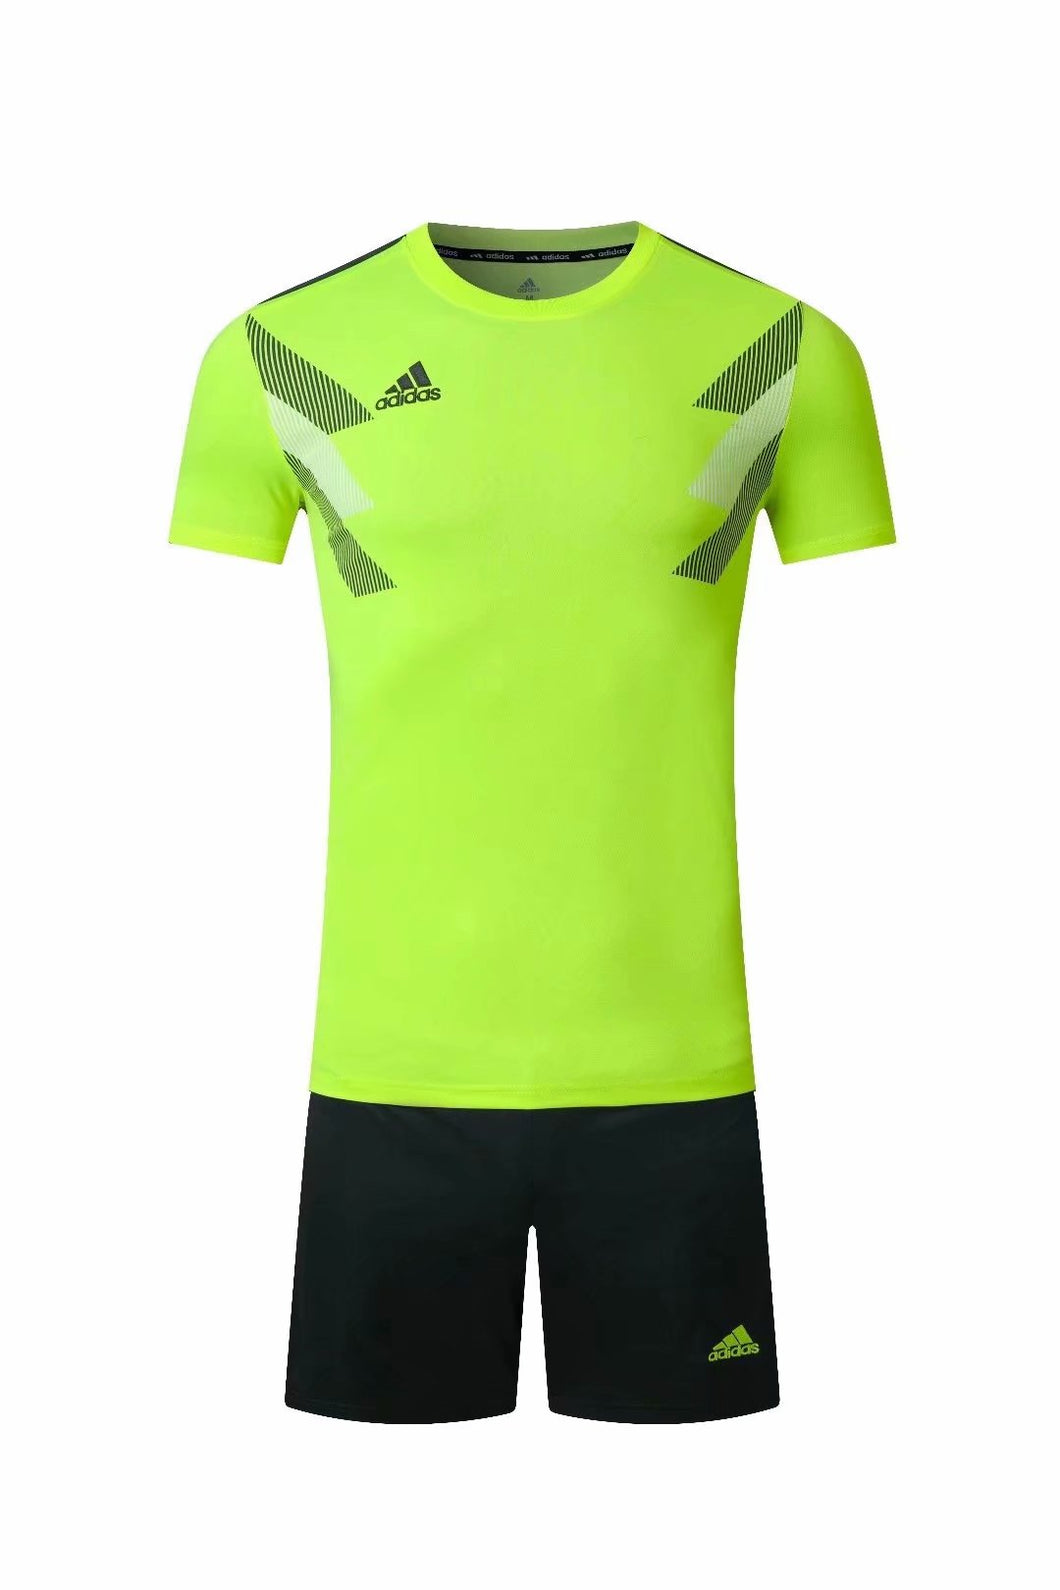 Adidas Full Football Kit Adult Sizes only - Green with Grey and White Chest graphic